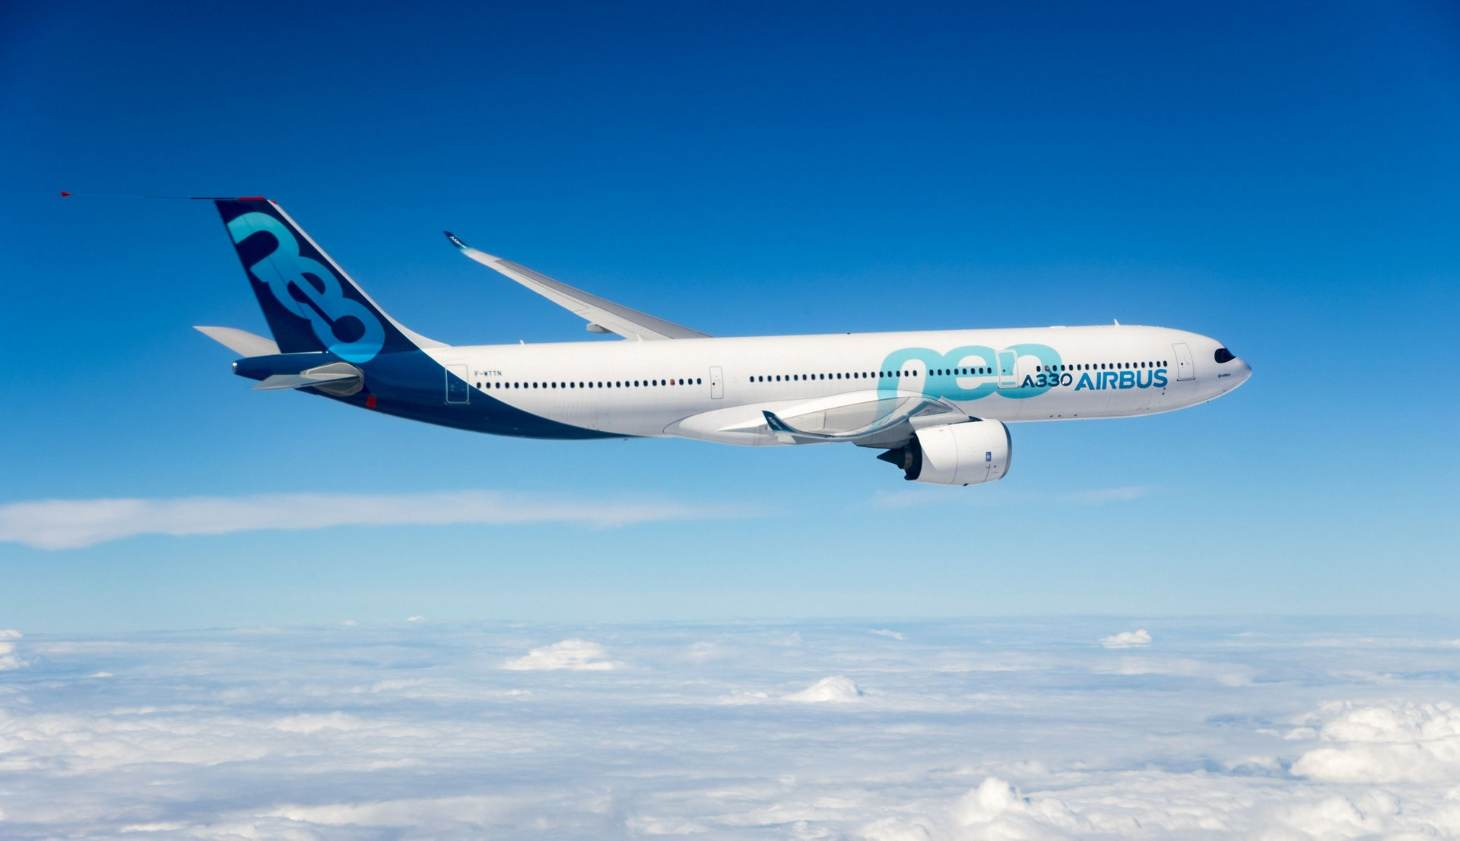 Paris Air Show 2019: Airbus sells its A330neo to two major airlines